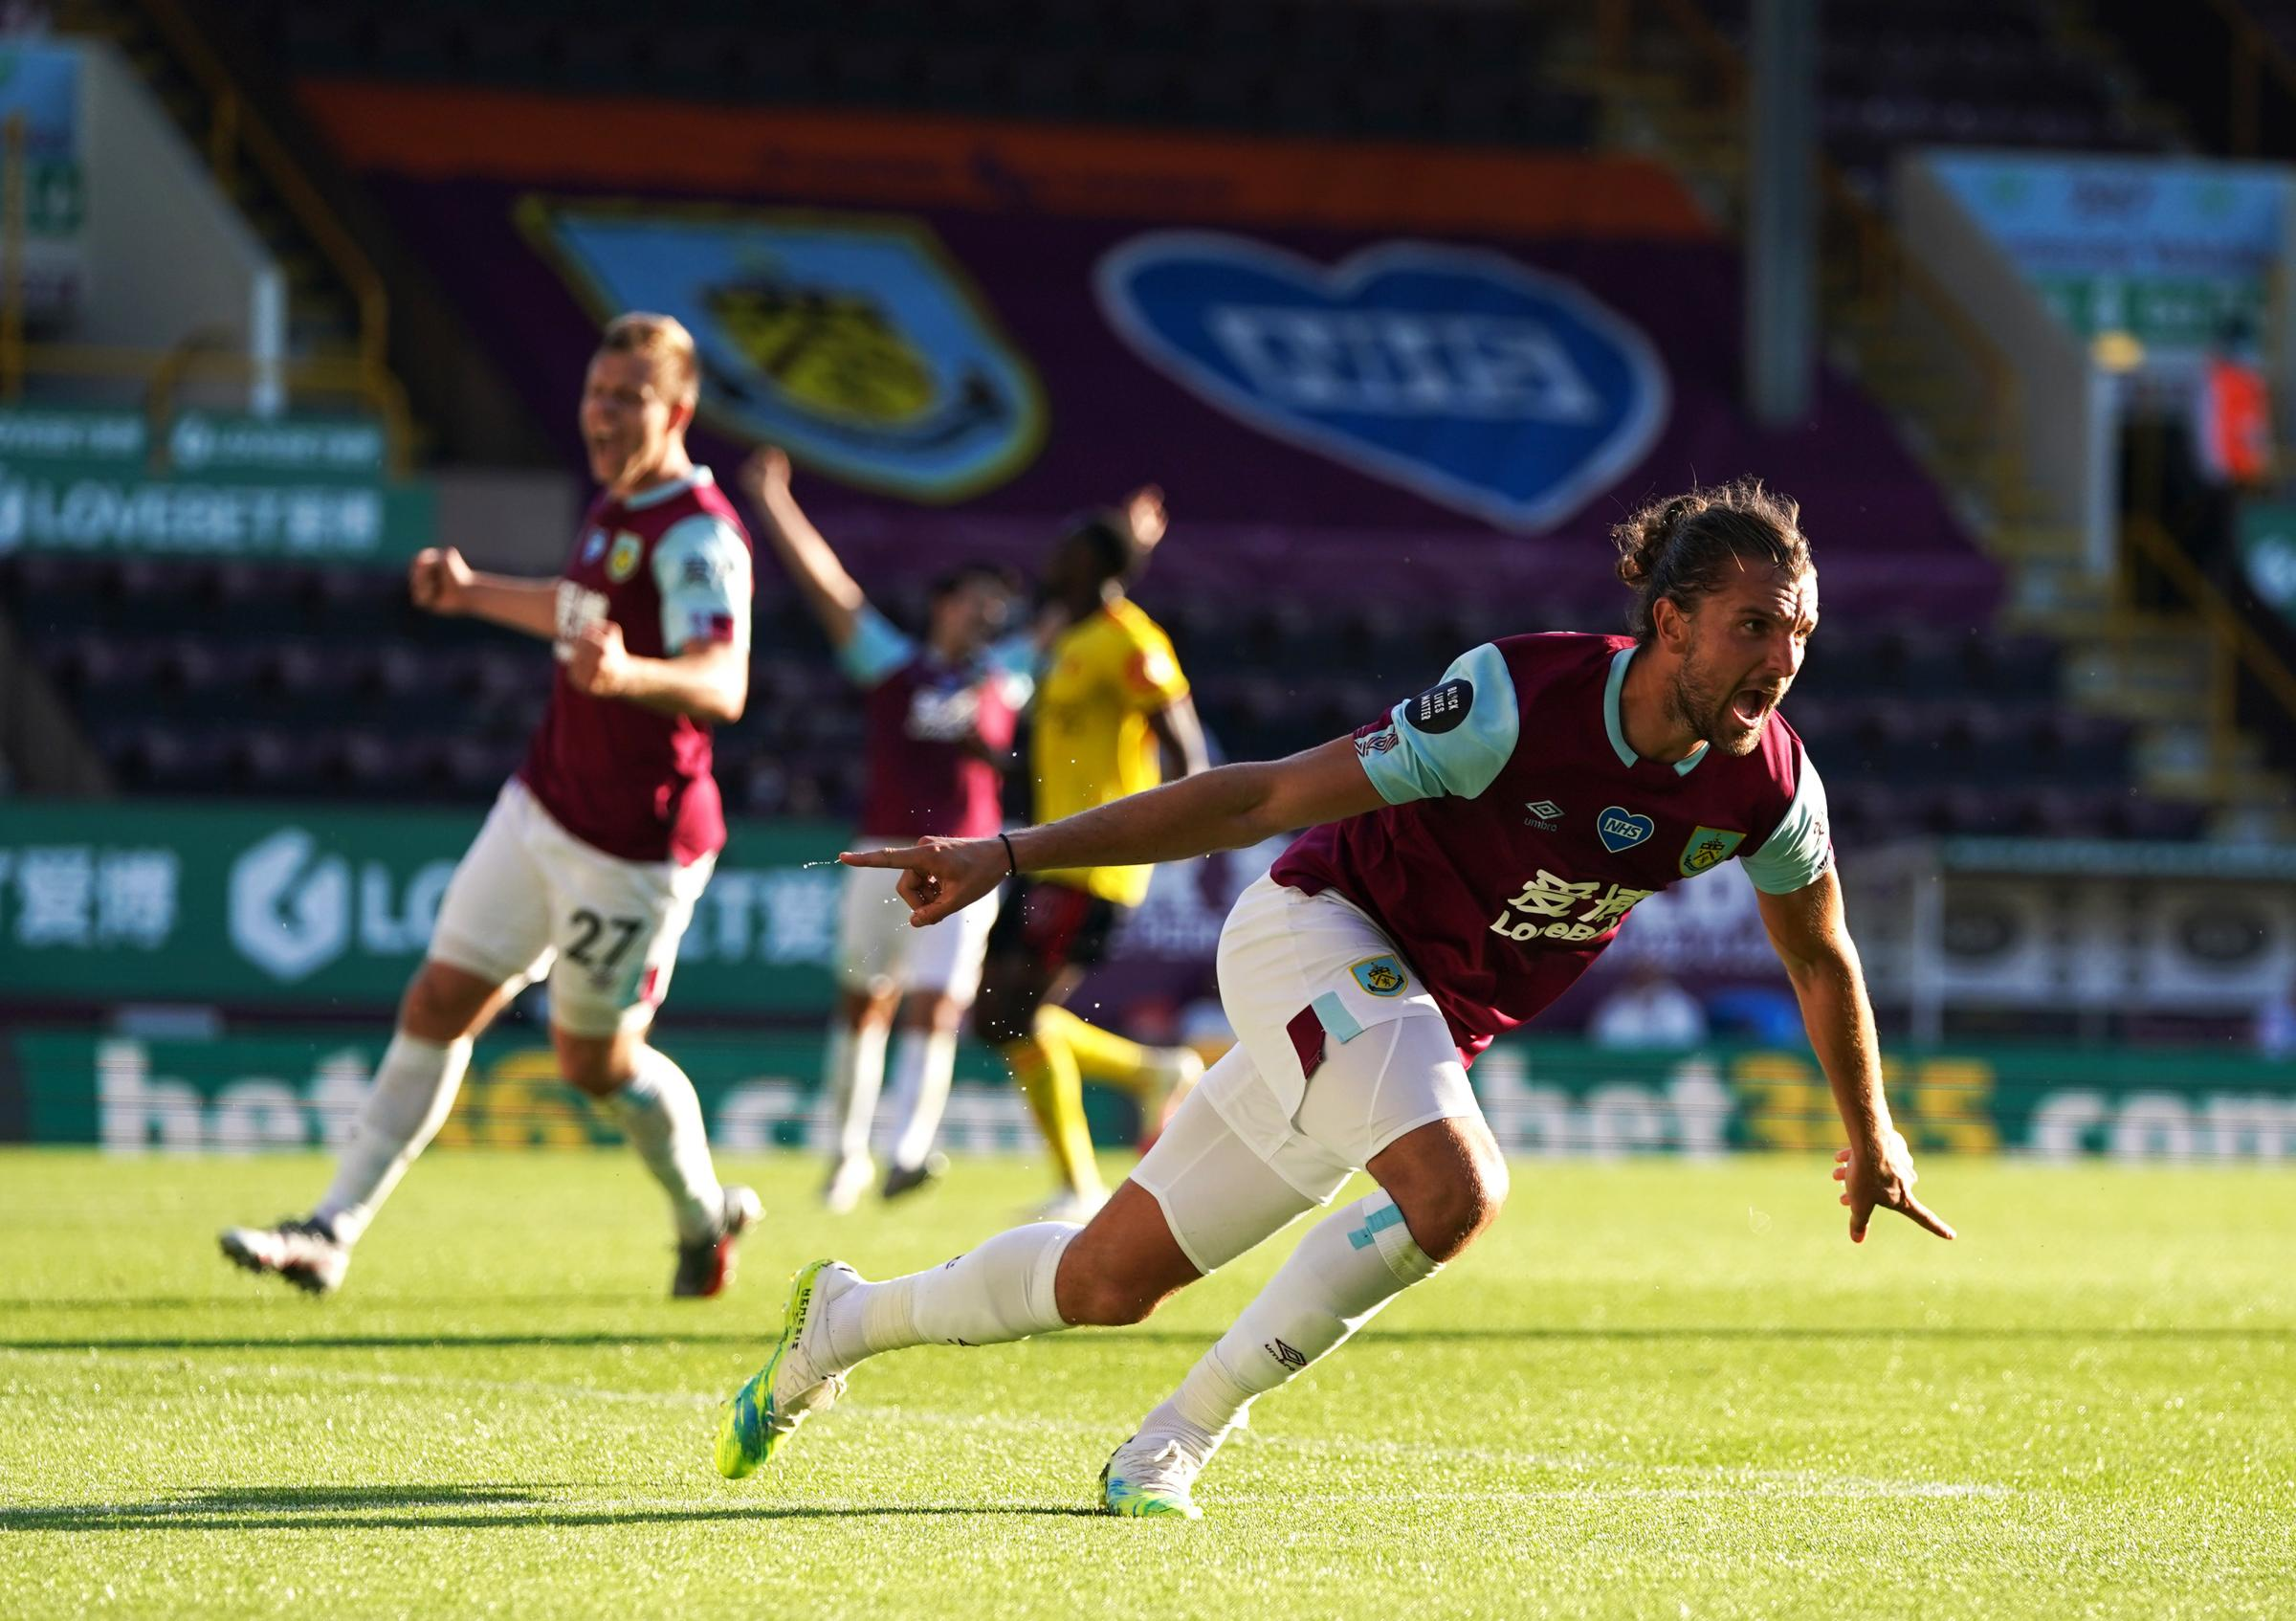 Burnley 1-0 Watford: Jay Rodriguez gives Clarets something to smile about